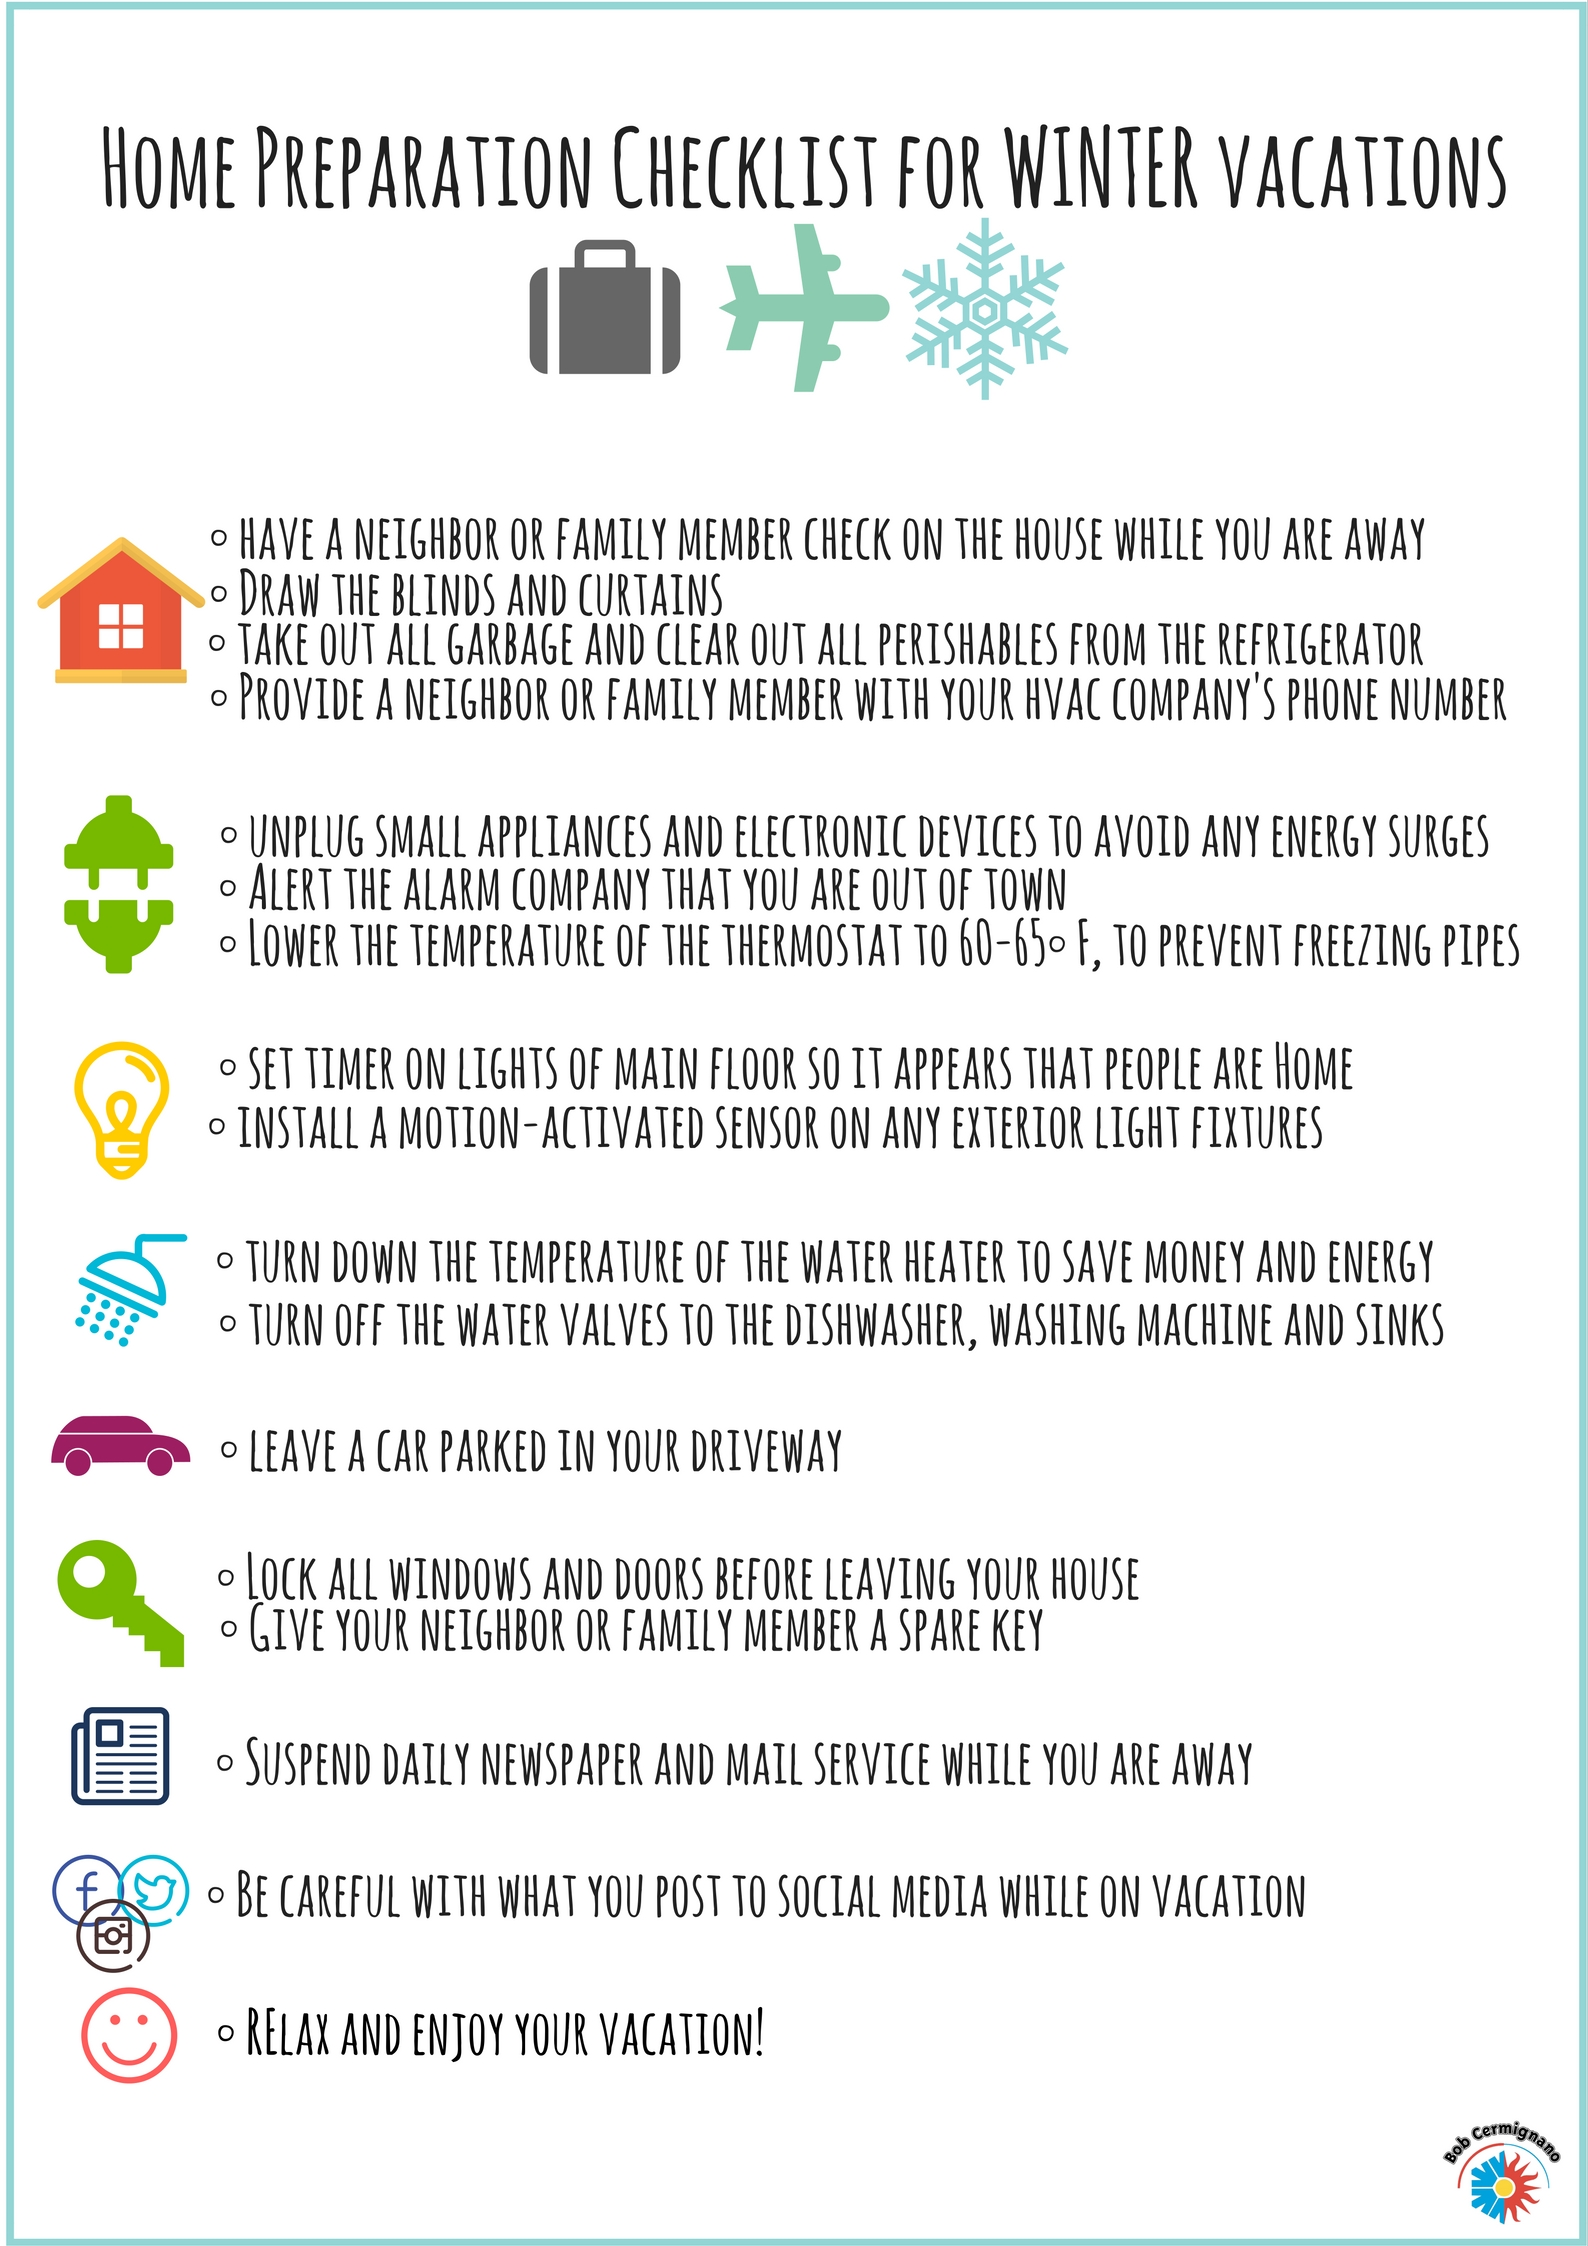 How To Prepare Your Home Before Your Winter Vacation Bob